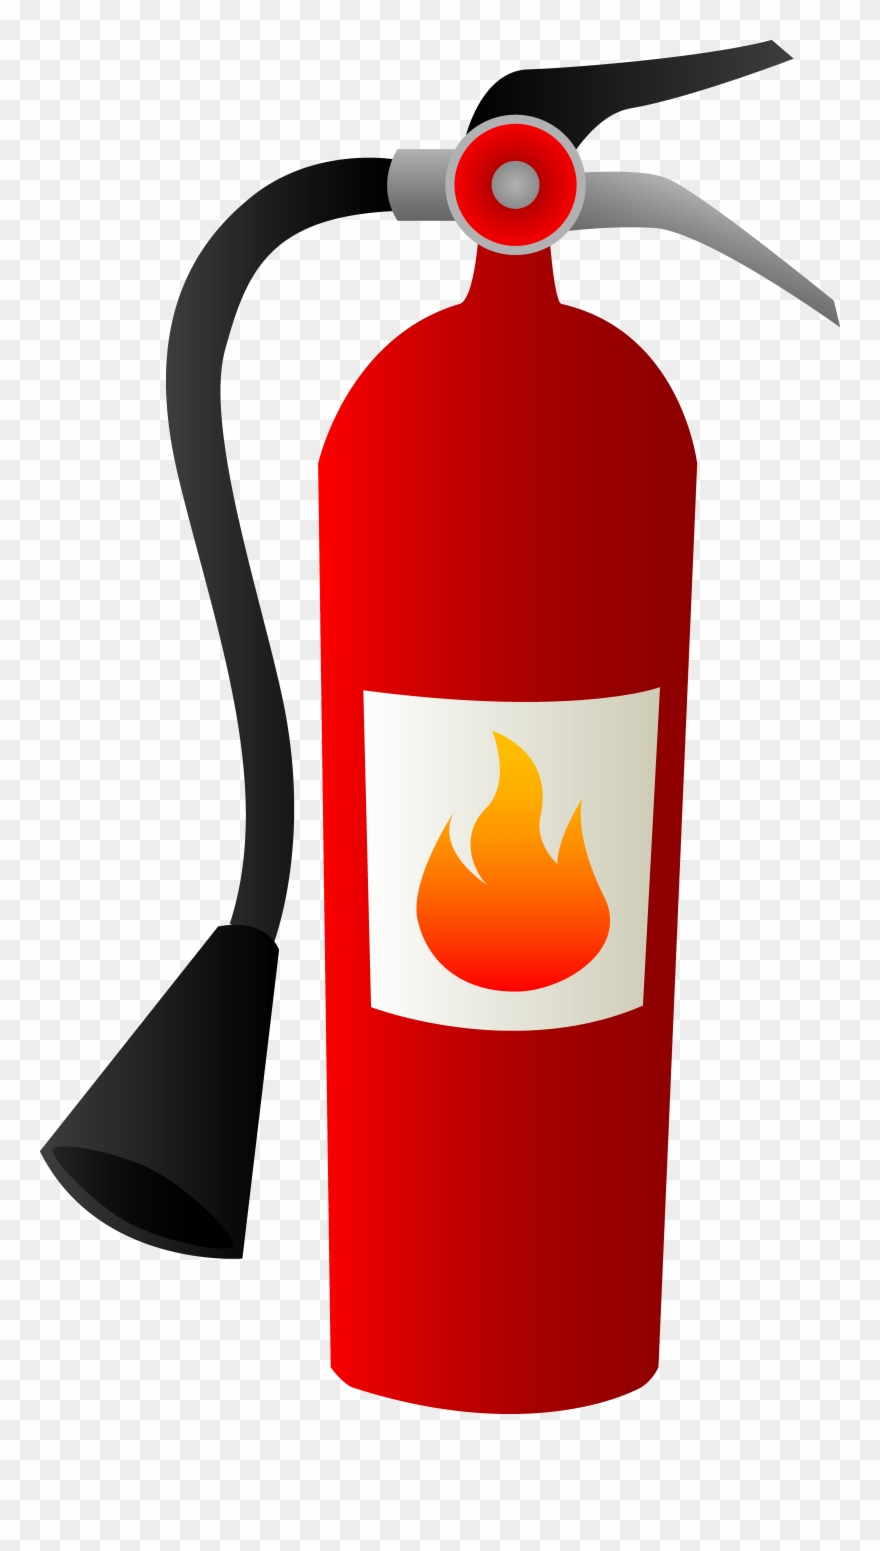 medium resolution of kitchen fire safety clip art fire extinguisher clipart png download